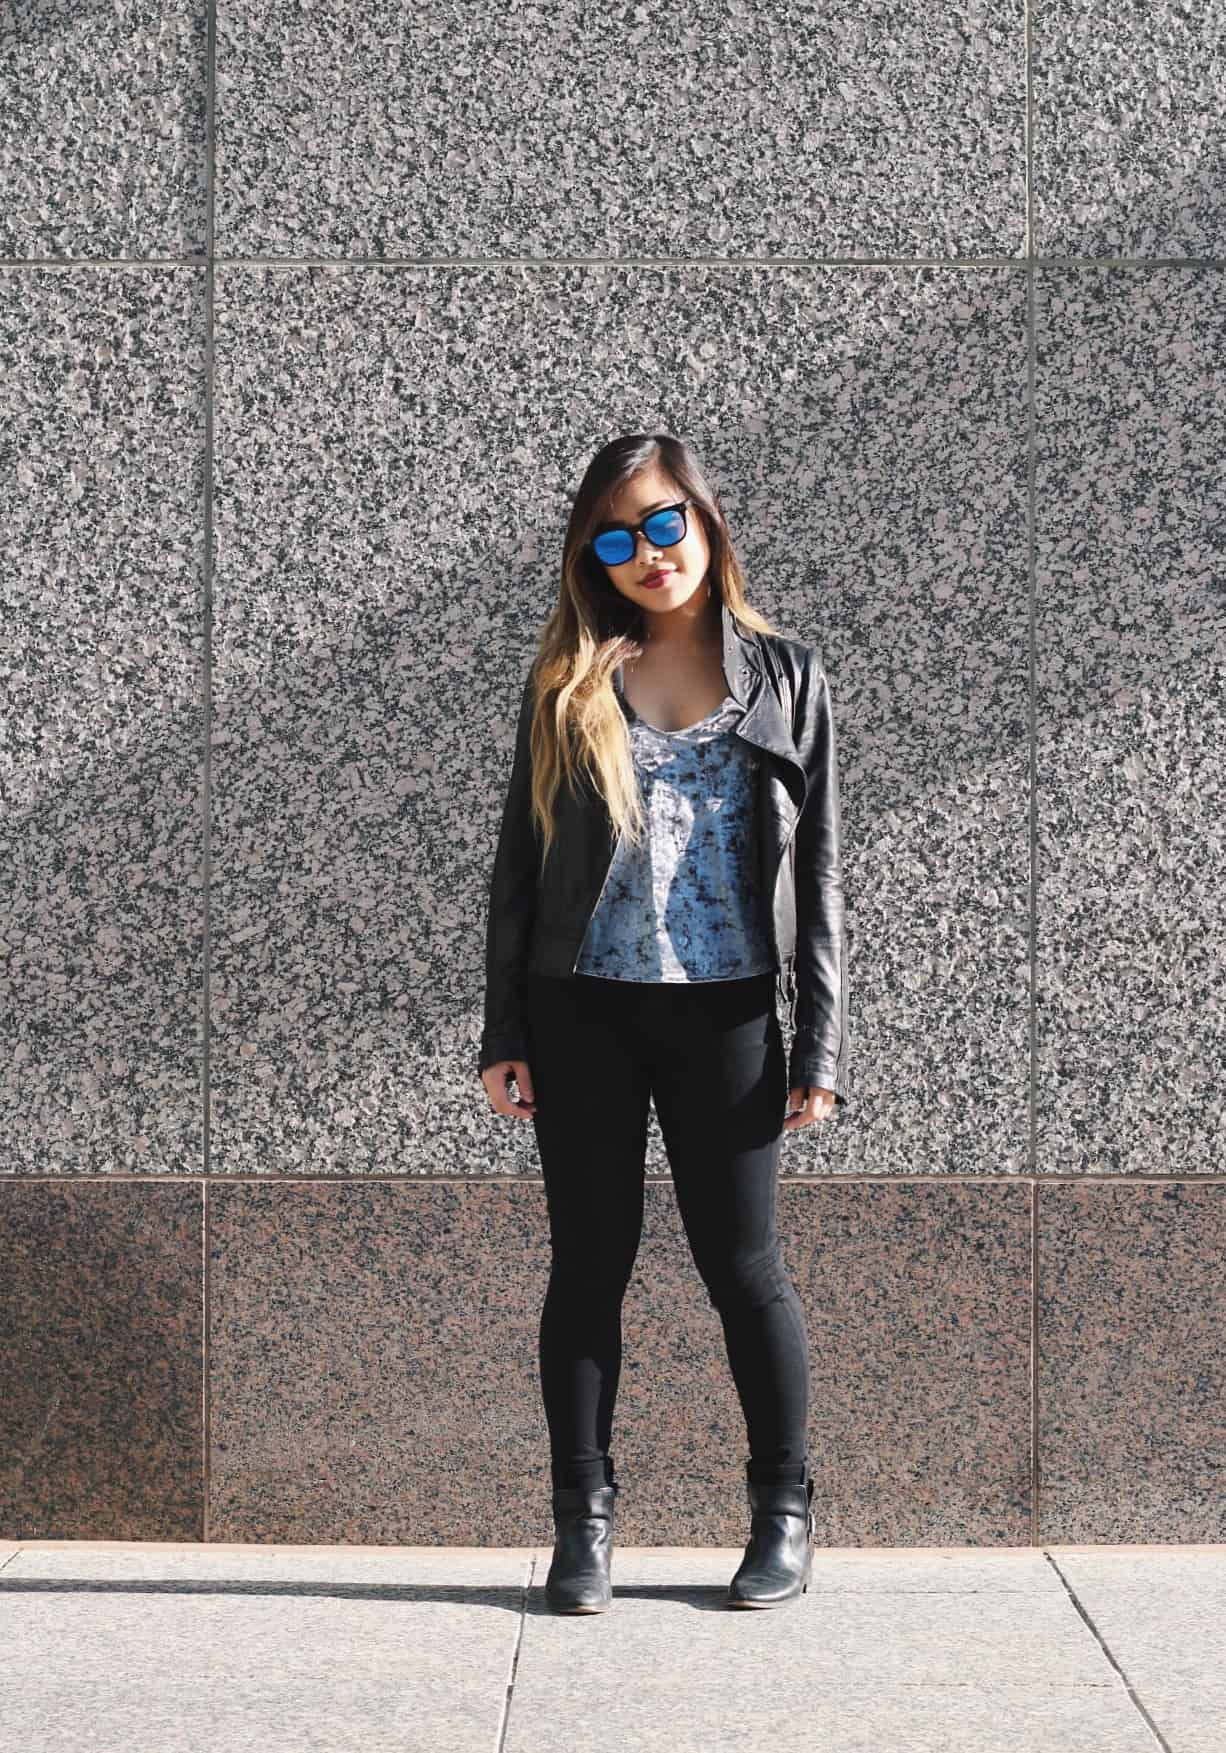 Casual fall outfit featuring black leather jacket and black denim